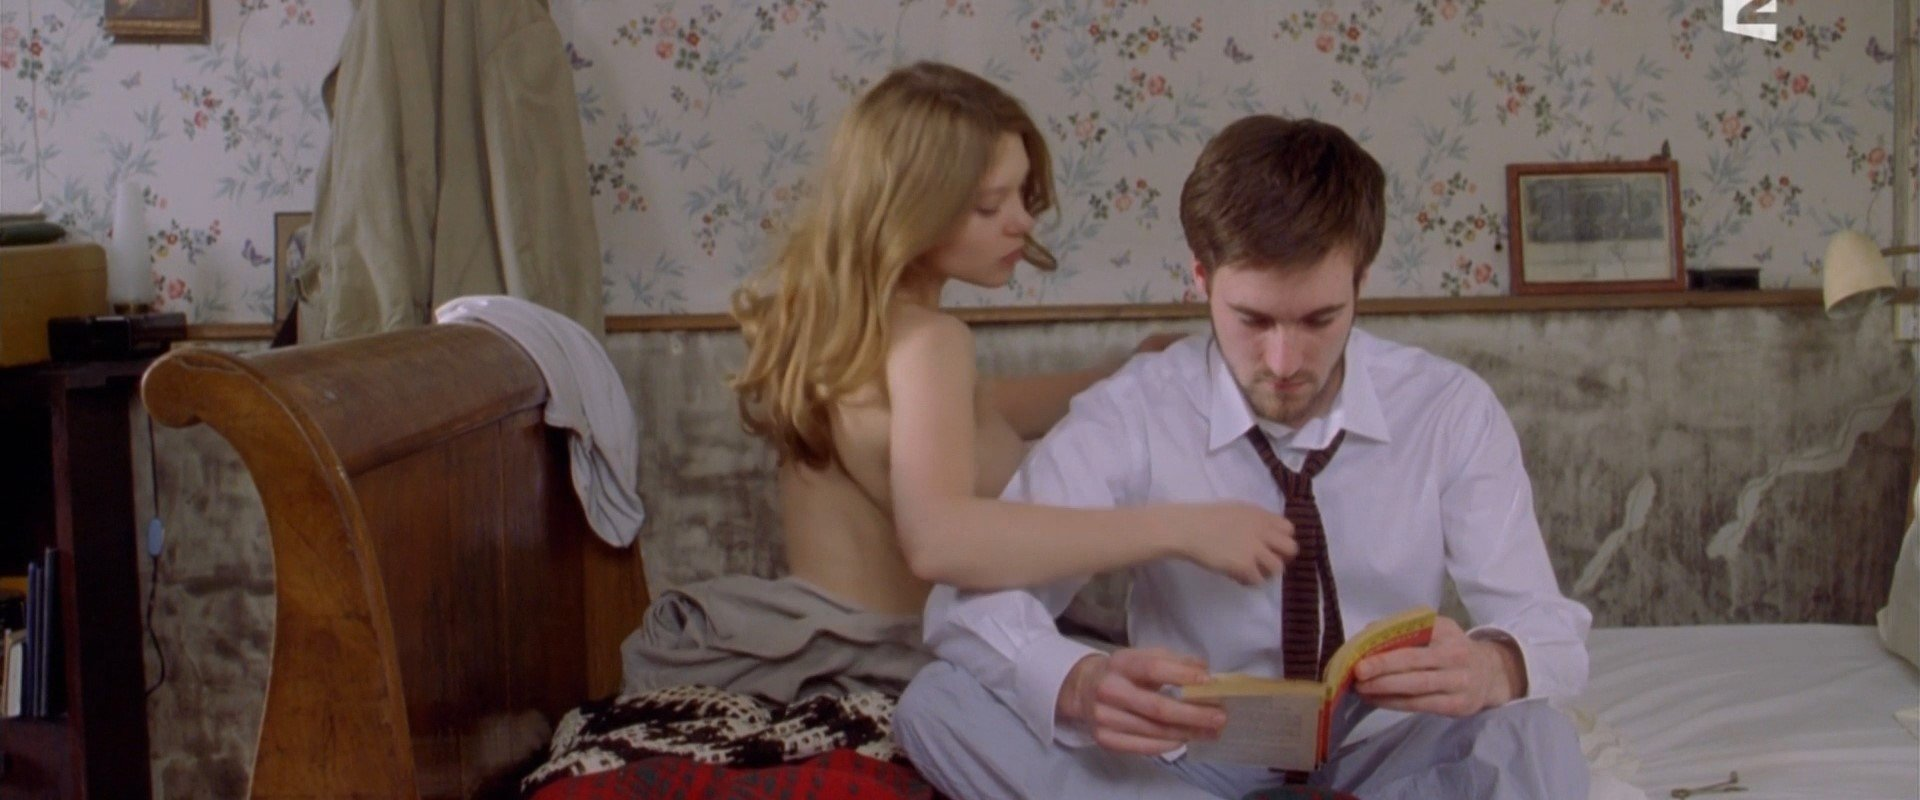 Lea seydoux sex video tits